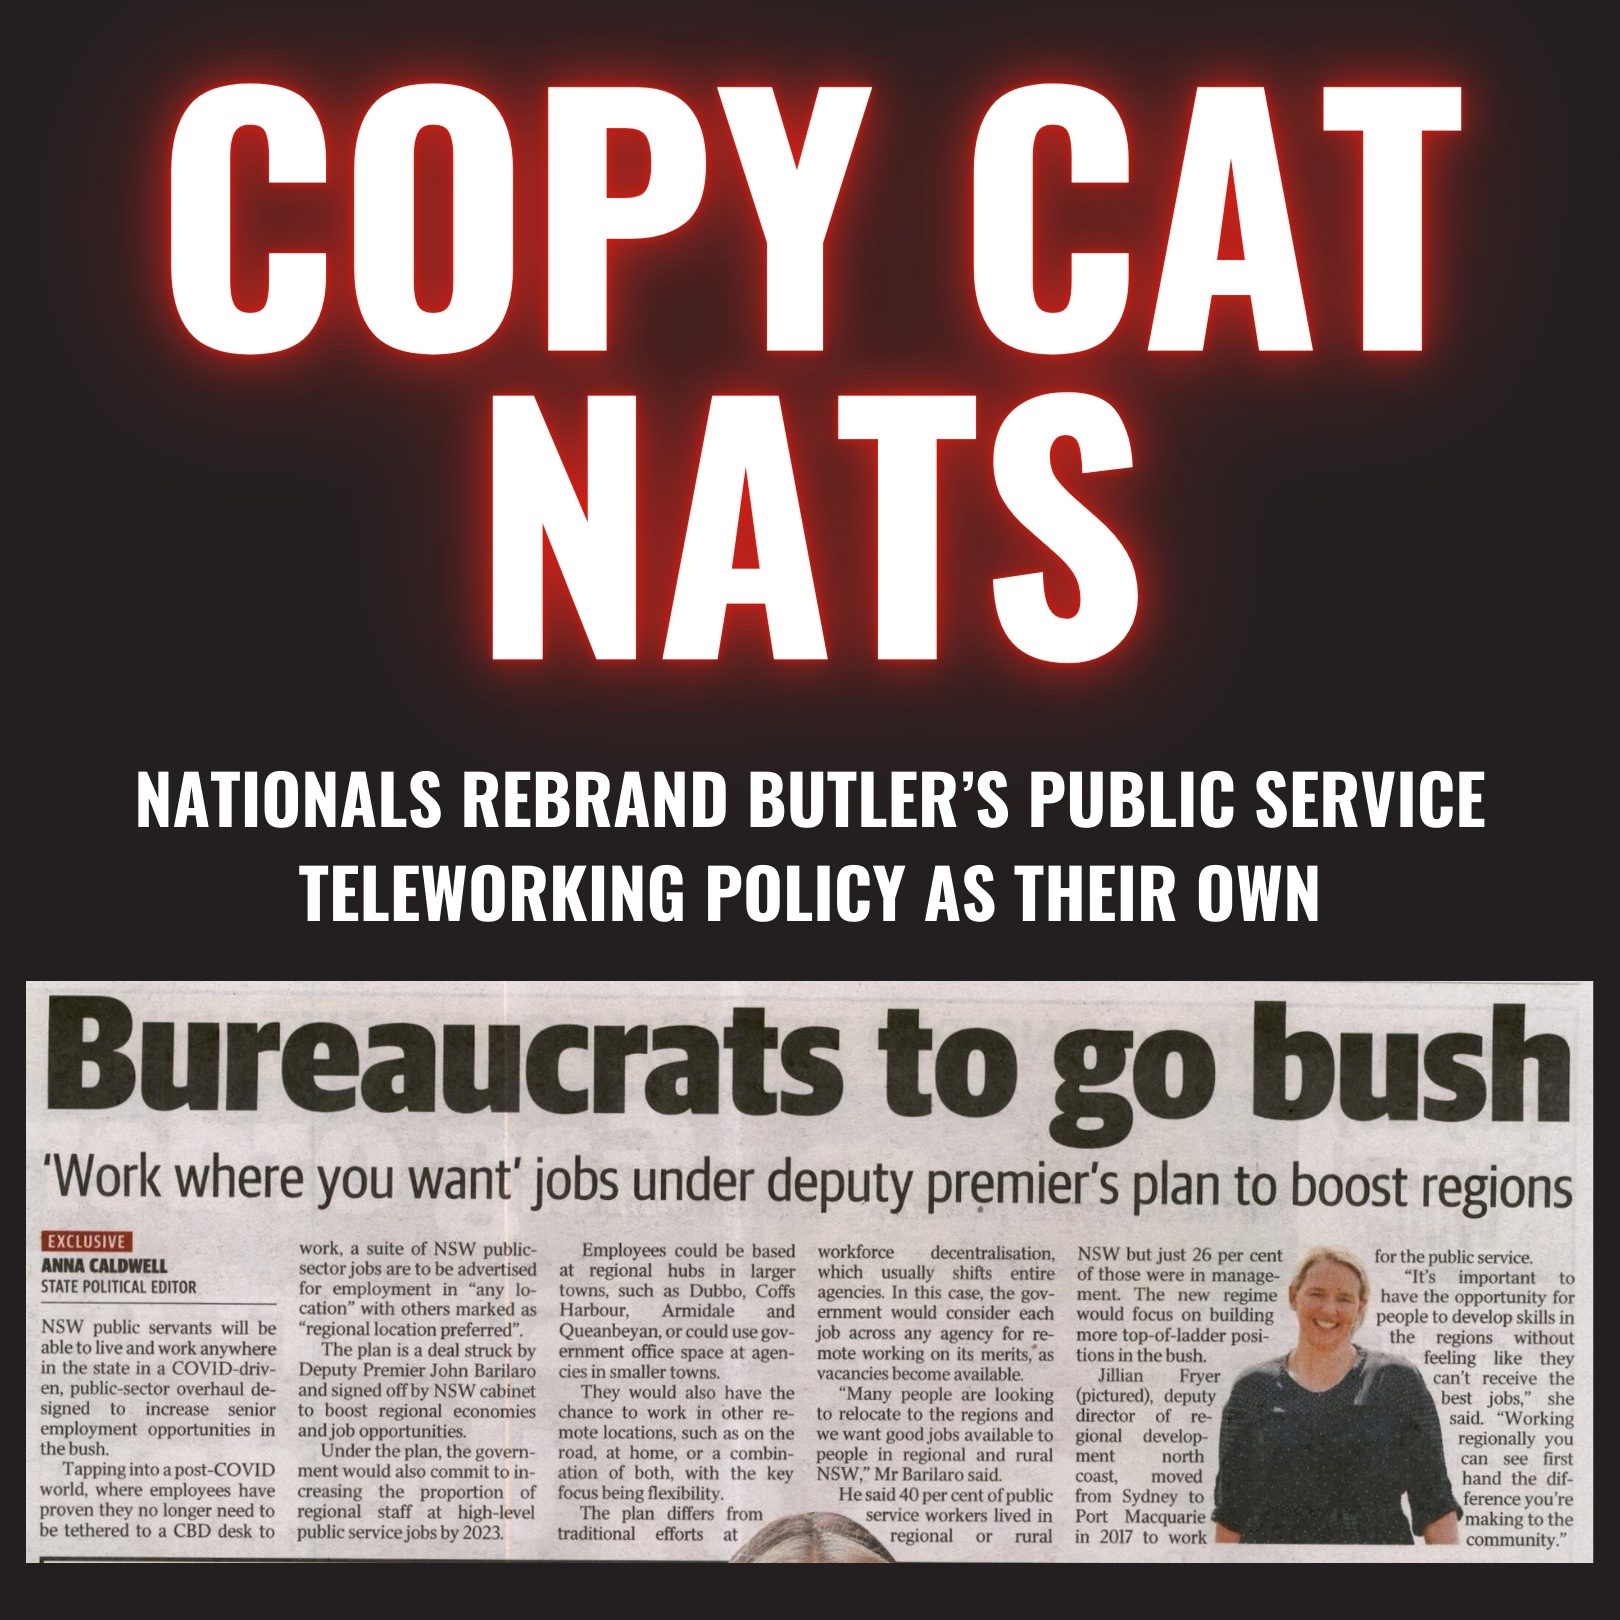 COPY CAT NATS - Nationals rebrand Butler's Public Service Teleworking policy as their own Image